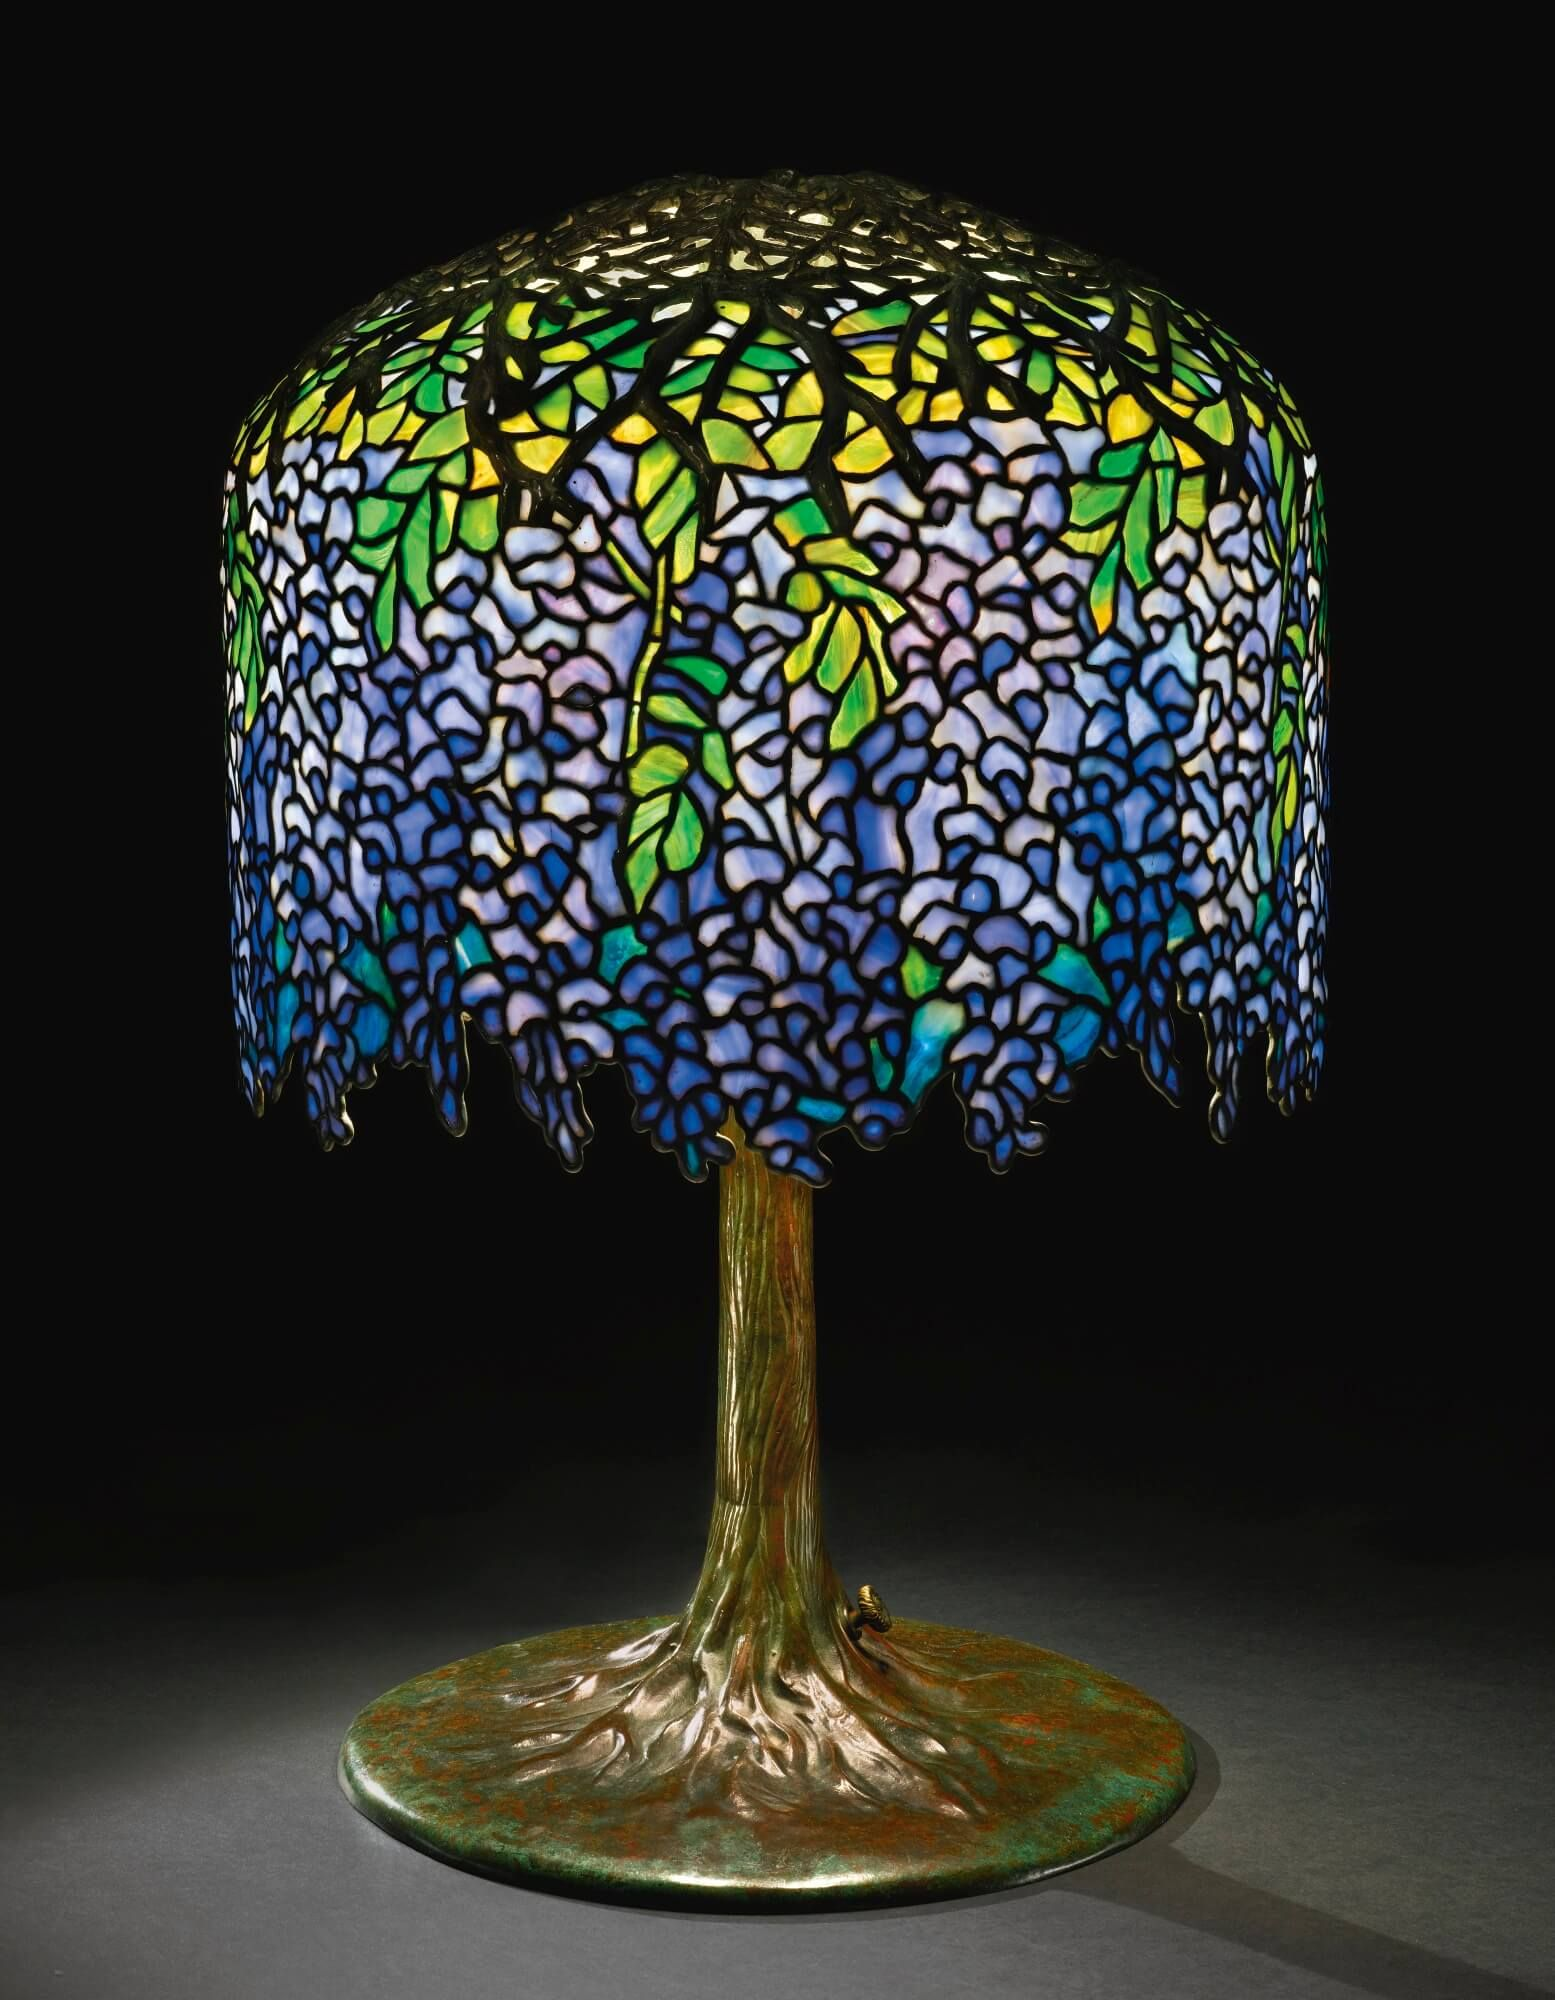 6 of the most expensive lamps in the world tifannys wisteria table 6 of the most expensive lamps in the world tifannys wisteria table lamp designed aloadofball Gallery